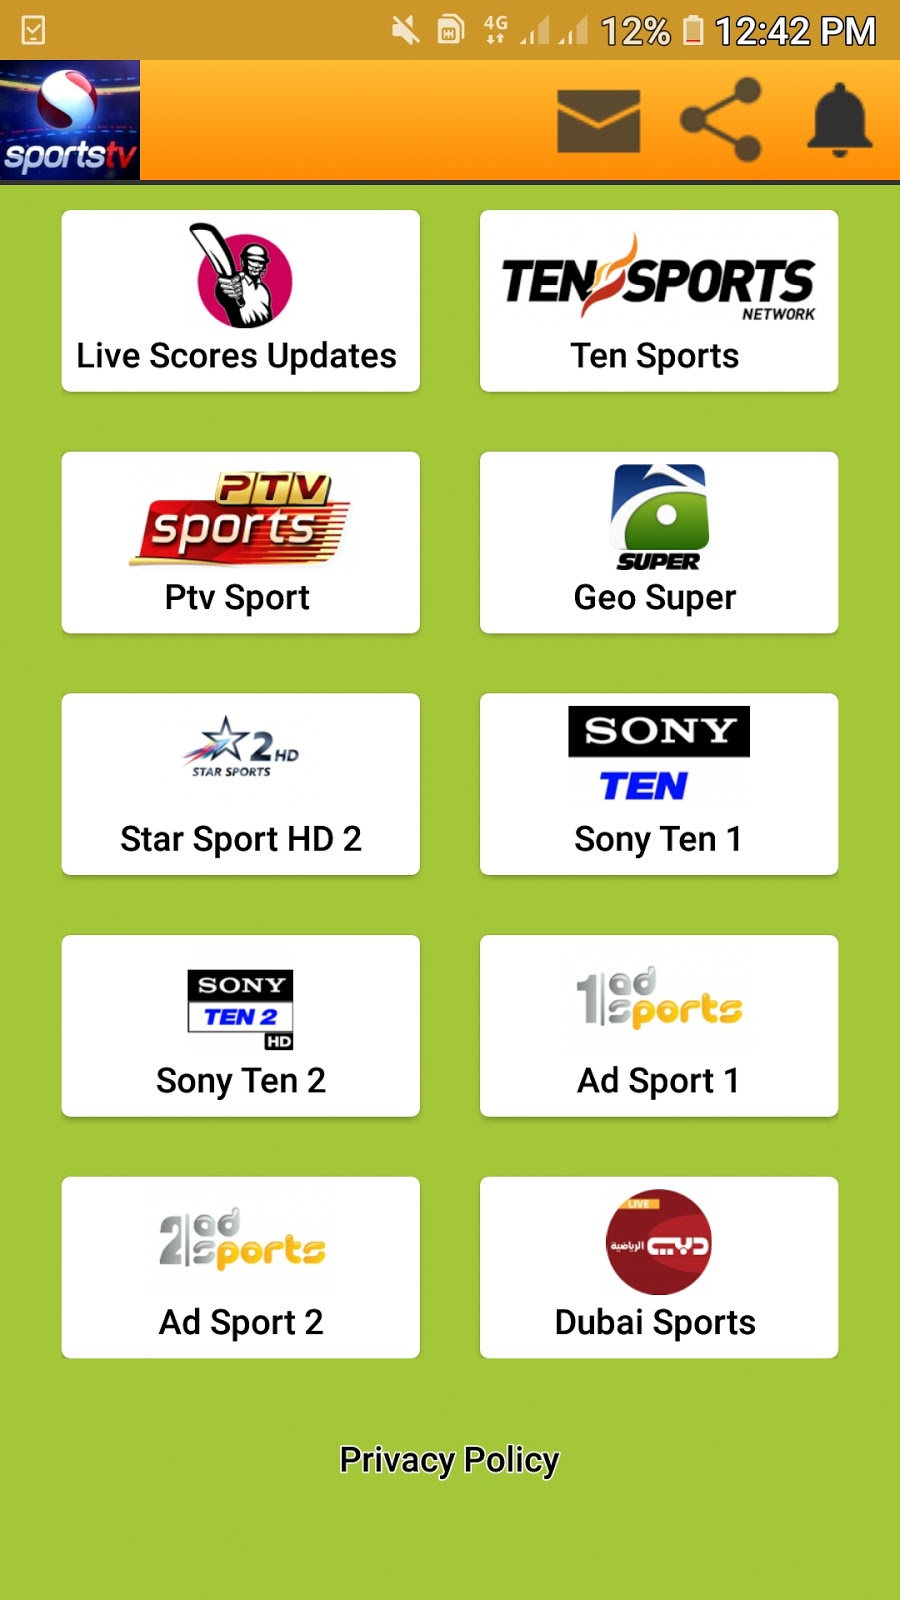 Sport For Android - Ad Sport Channel